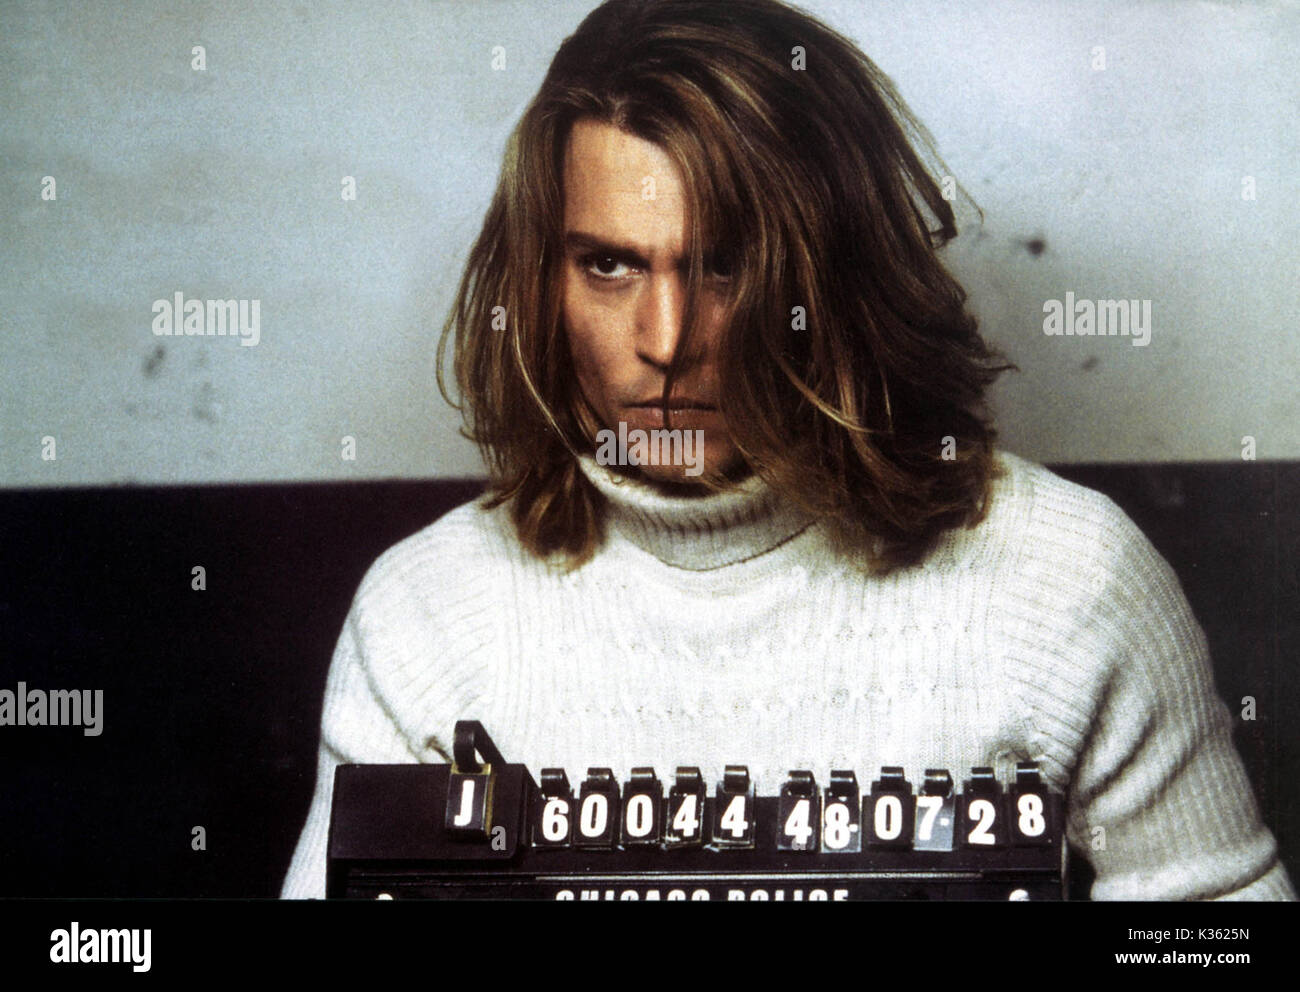 BLOW JOHNNY DEPP     Date: 2001 Stock Photo